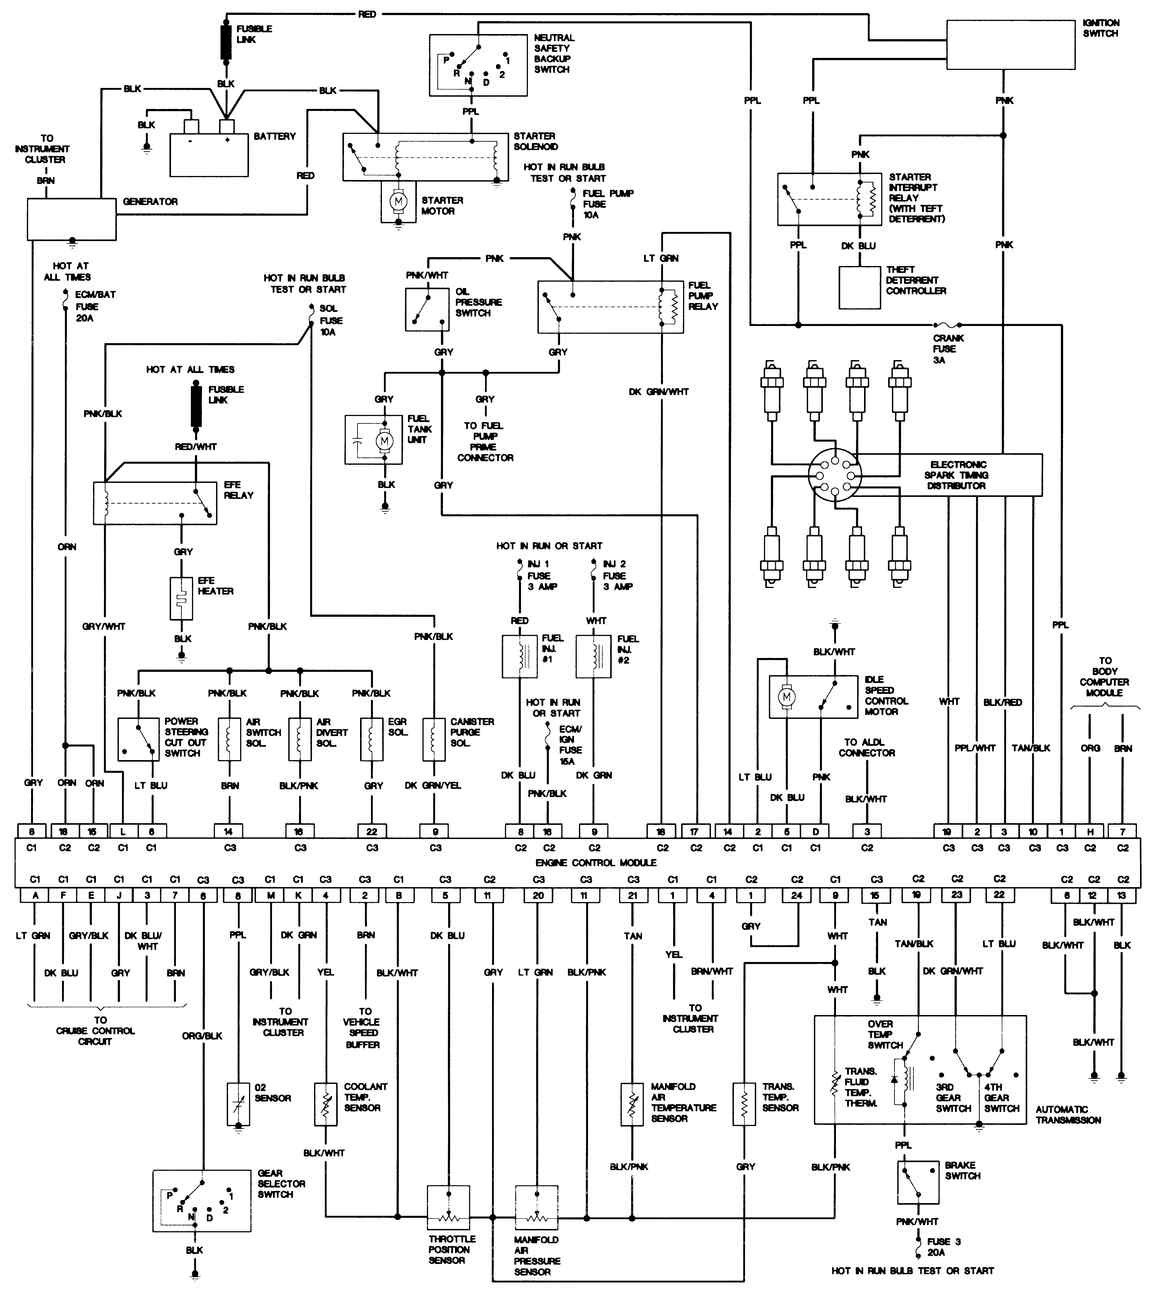 hight resolution of 2005 fleetwood rv wiring diagram wiring diagram detailed 2008 fleetwood motorhome electrical diagram fleetwood discovery motorhome wiring diagram